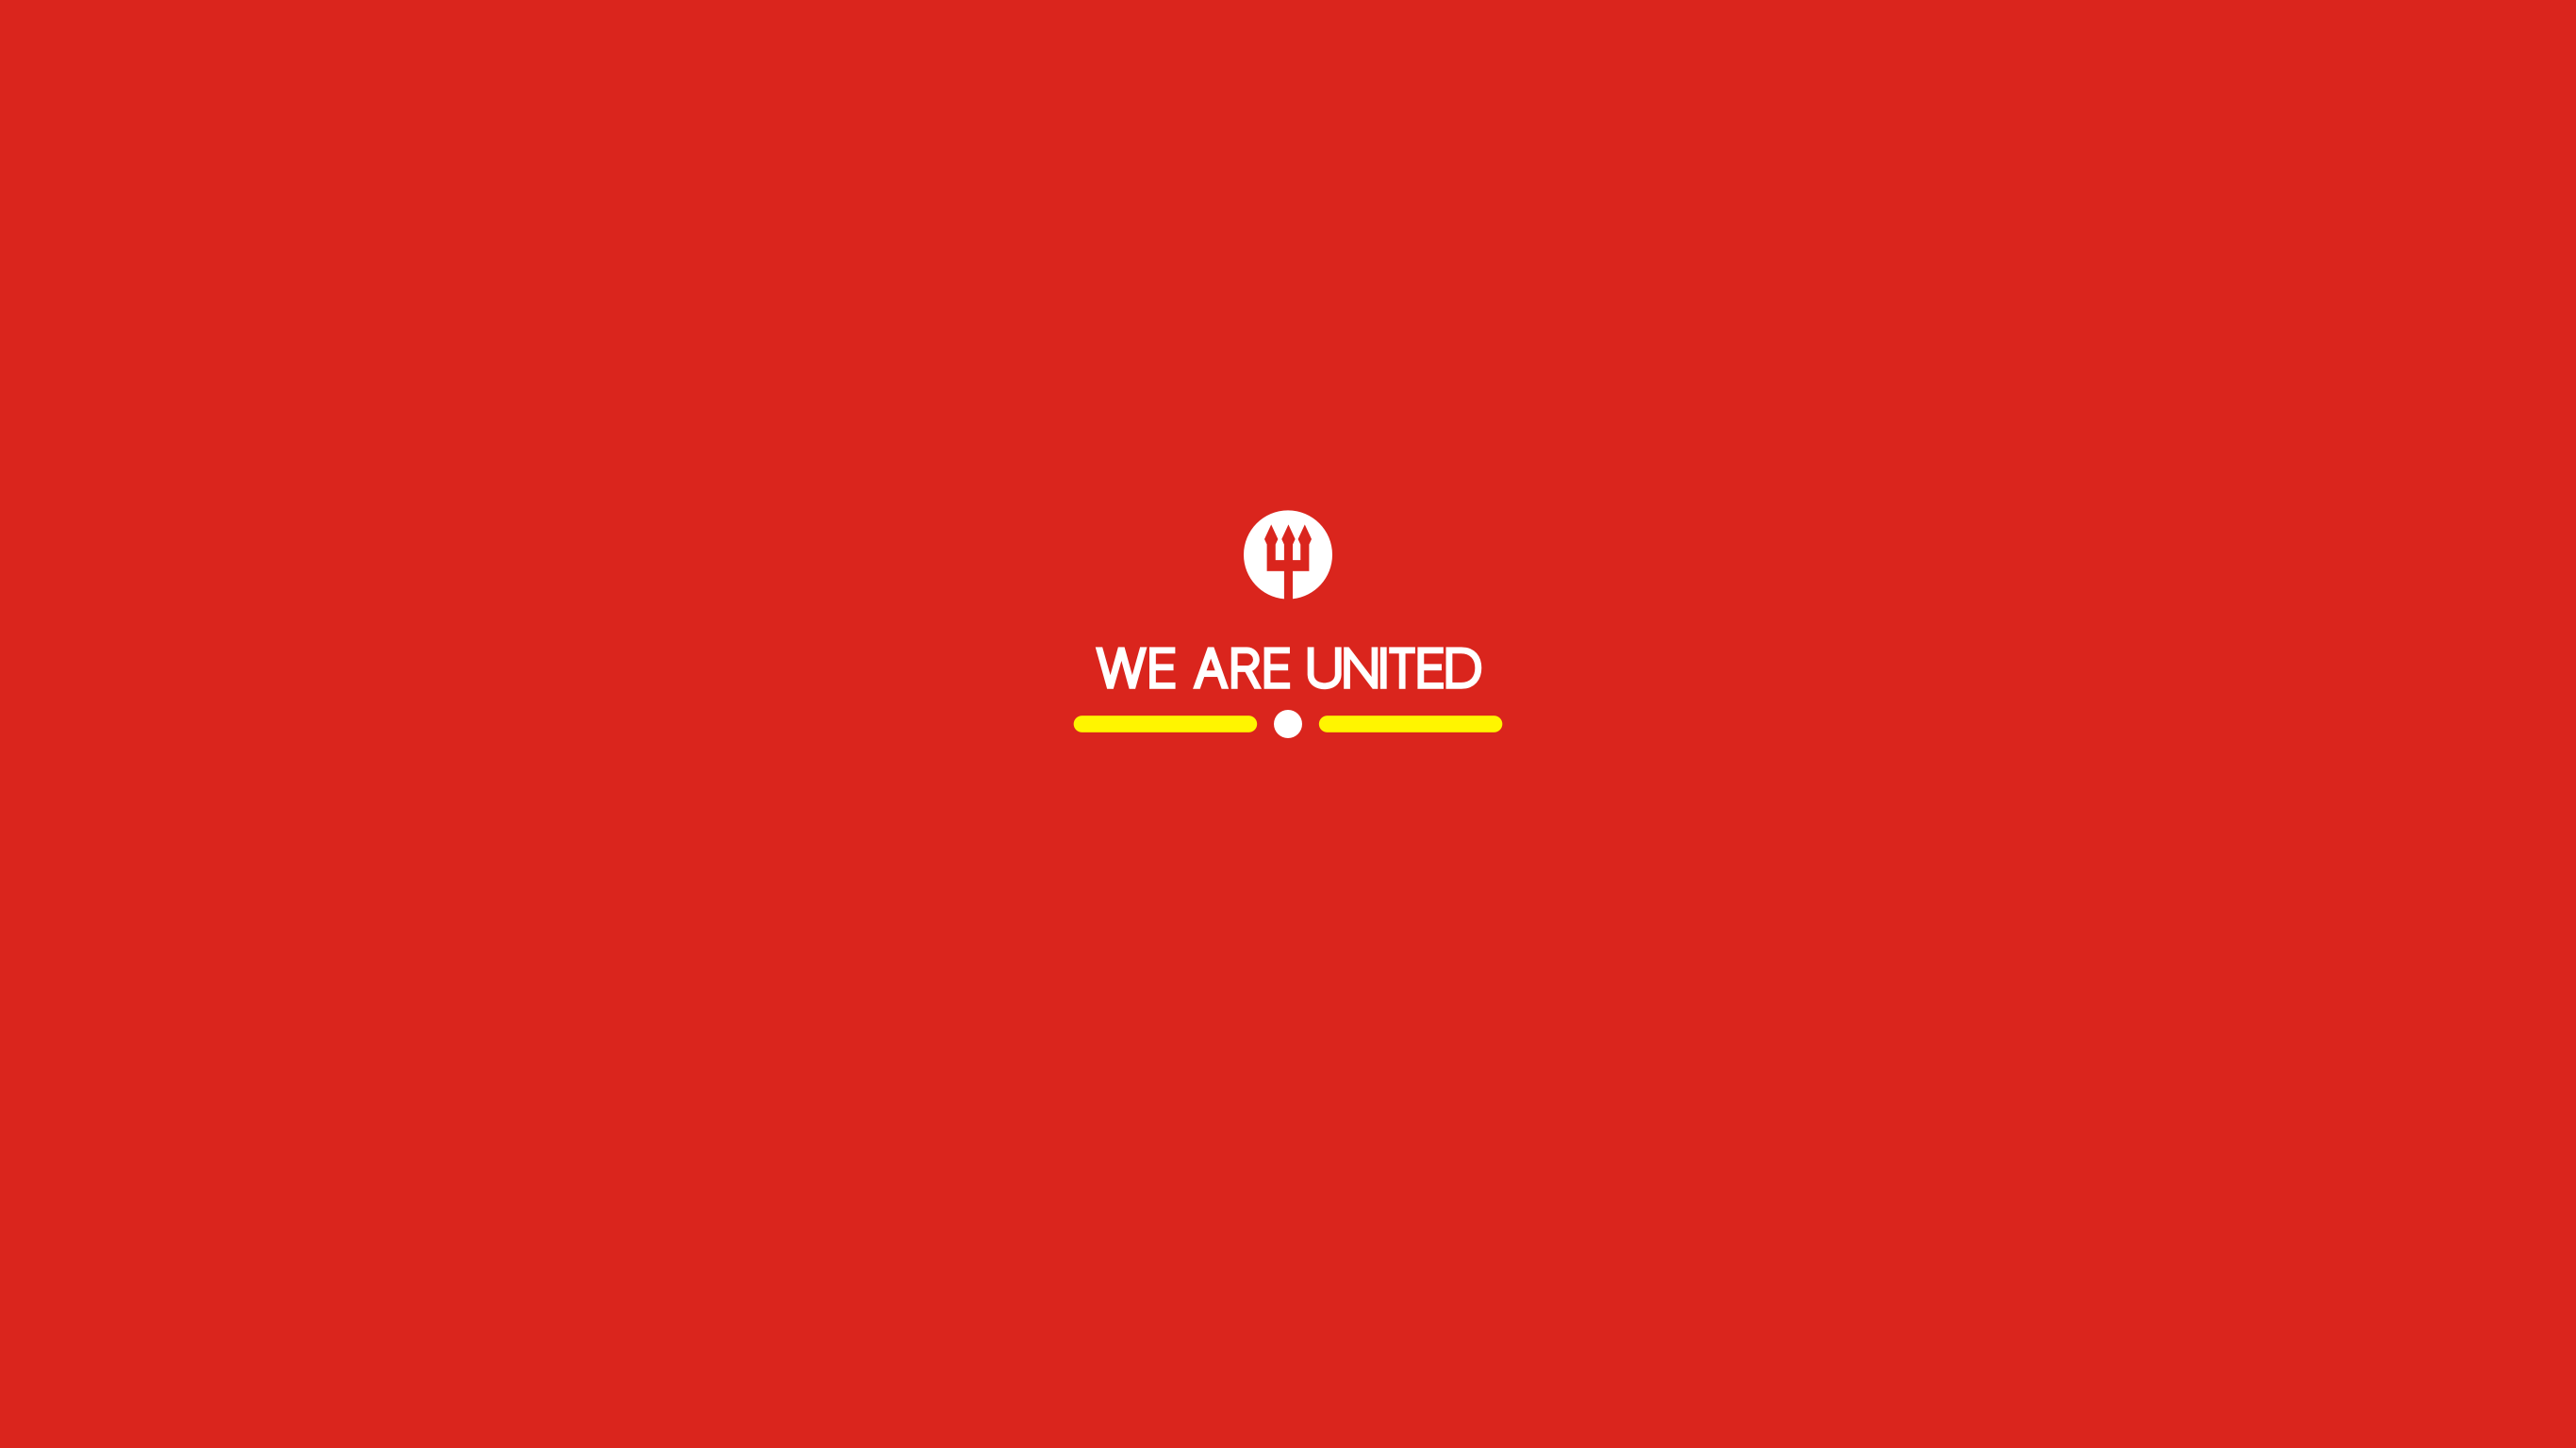 We Are United Simple Manchester United Wallpaper By Hamzah Zein